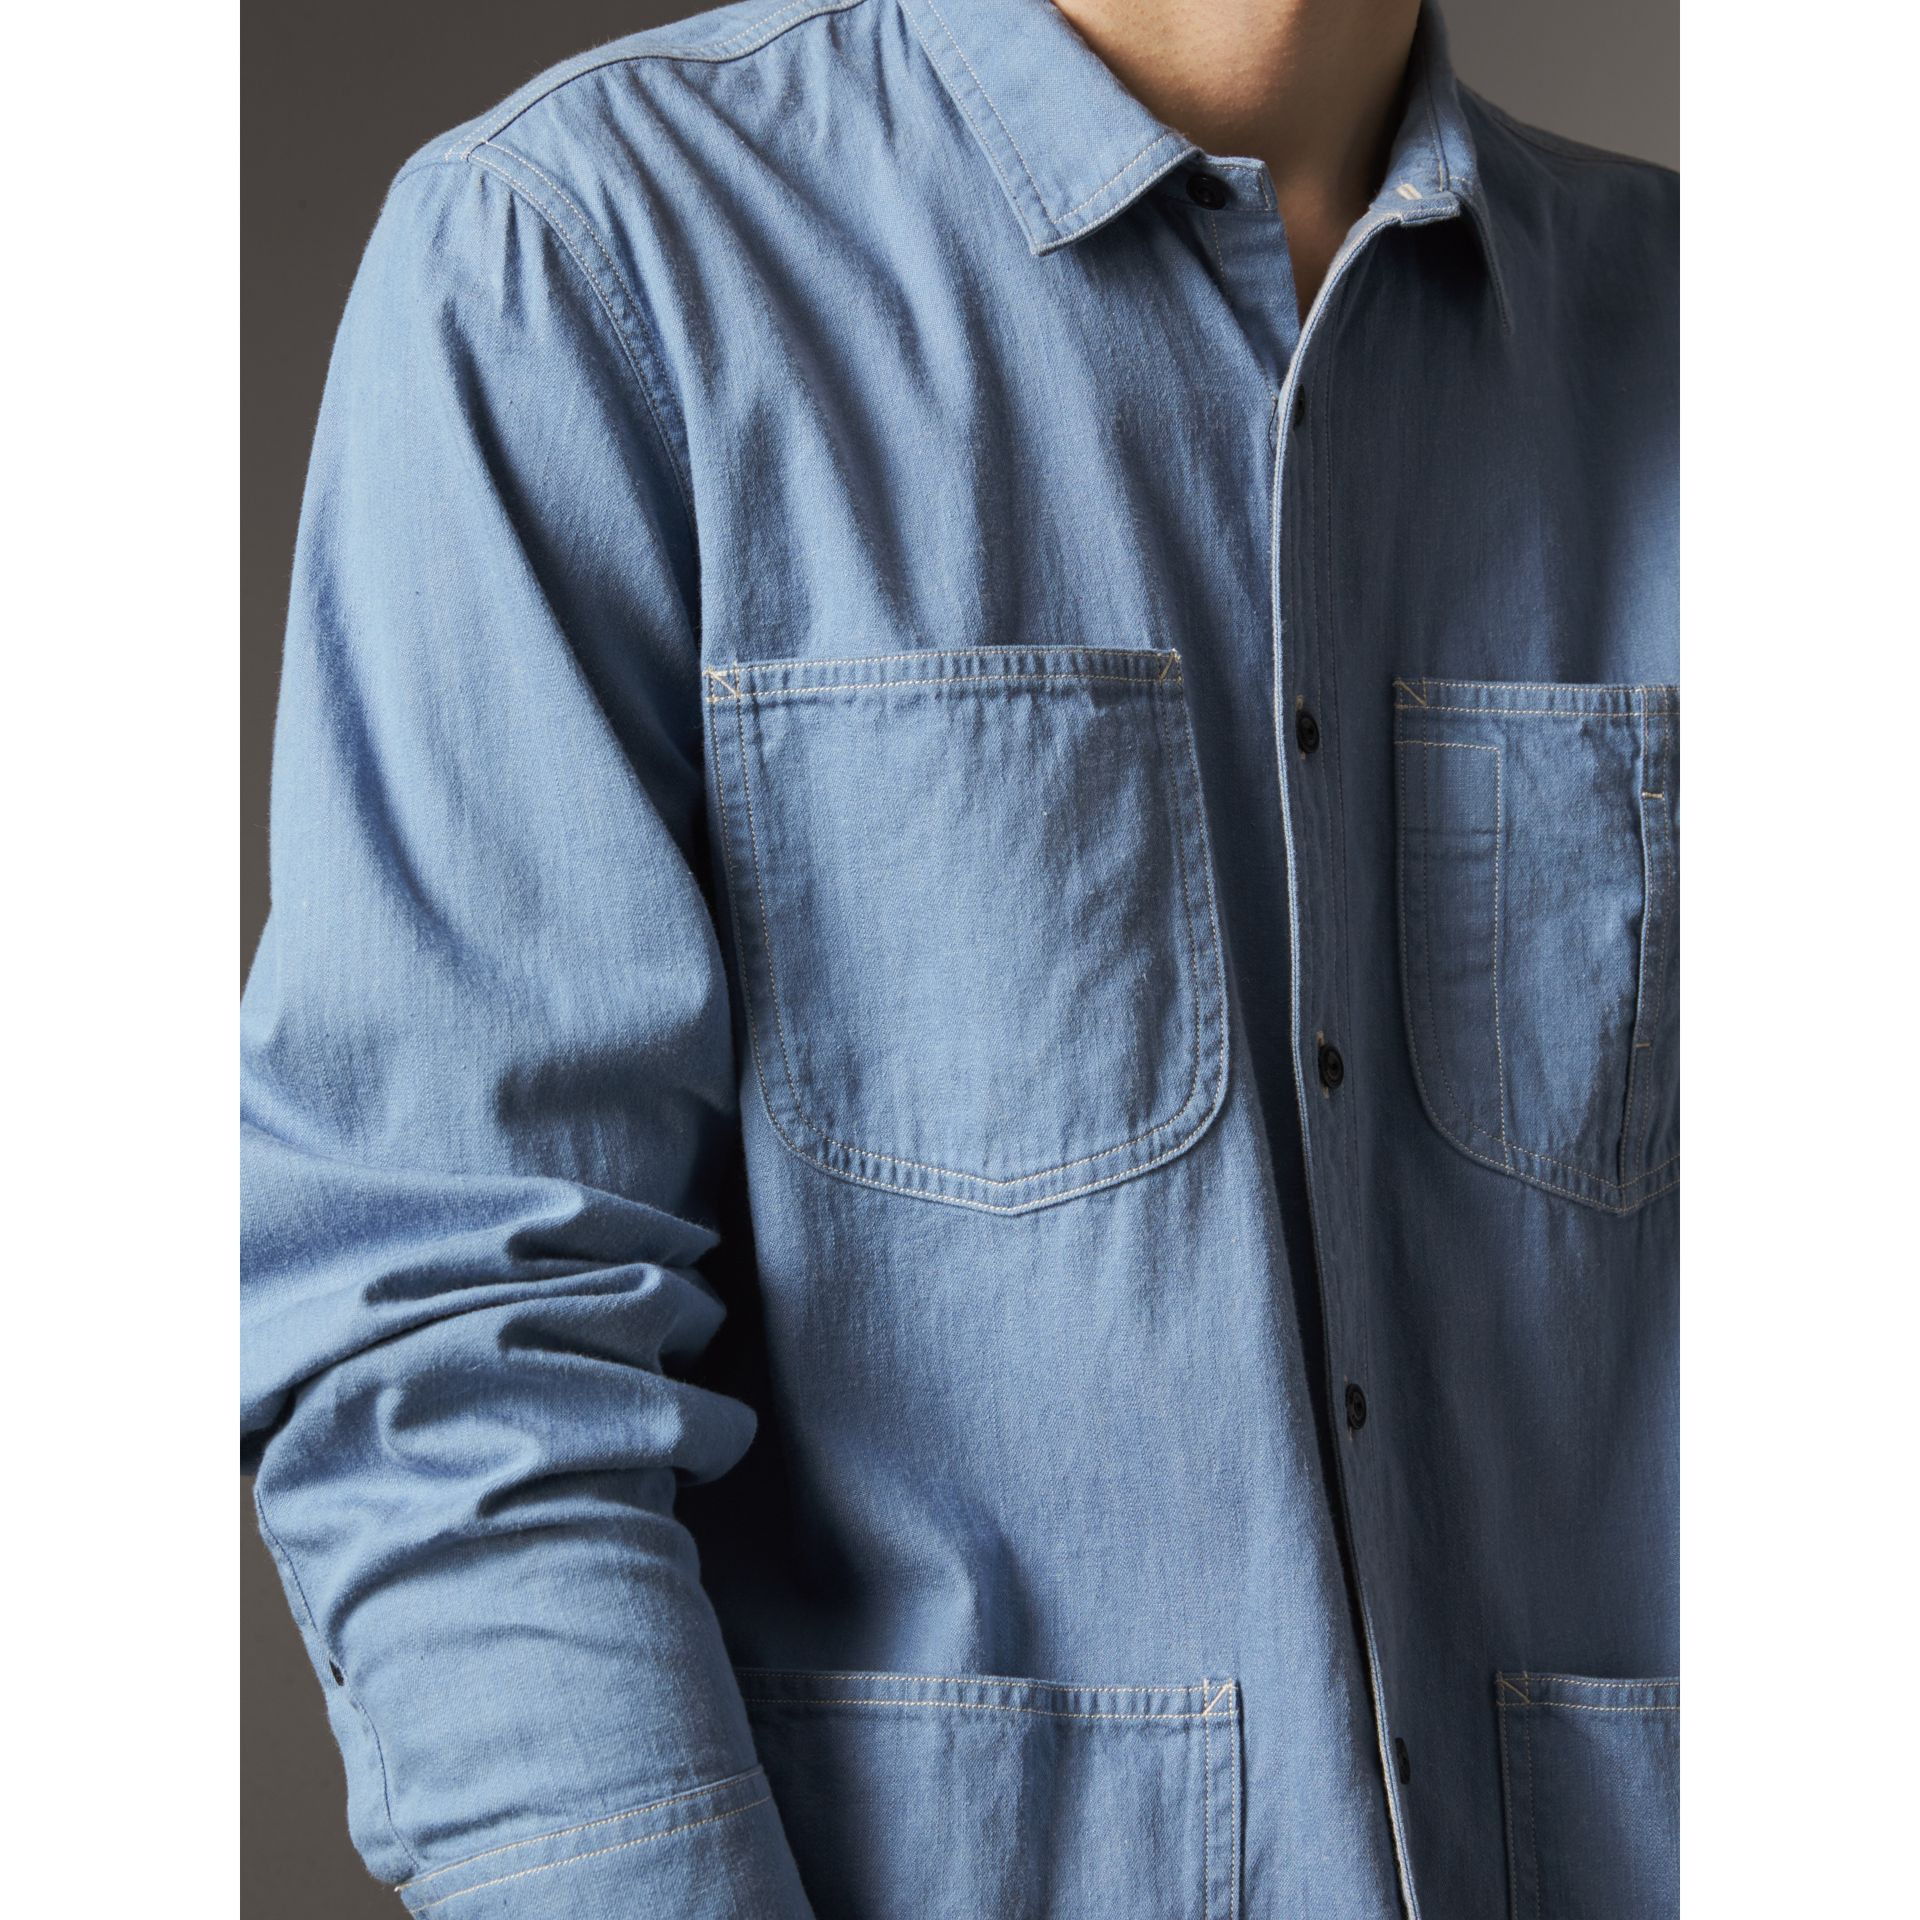 Japanese Denim Work Shirt in Light Blue - Men | Burberry - gallery image 1